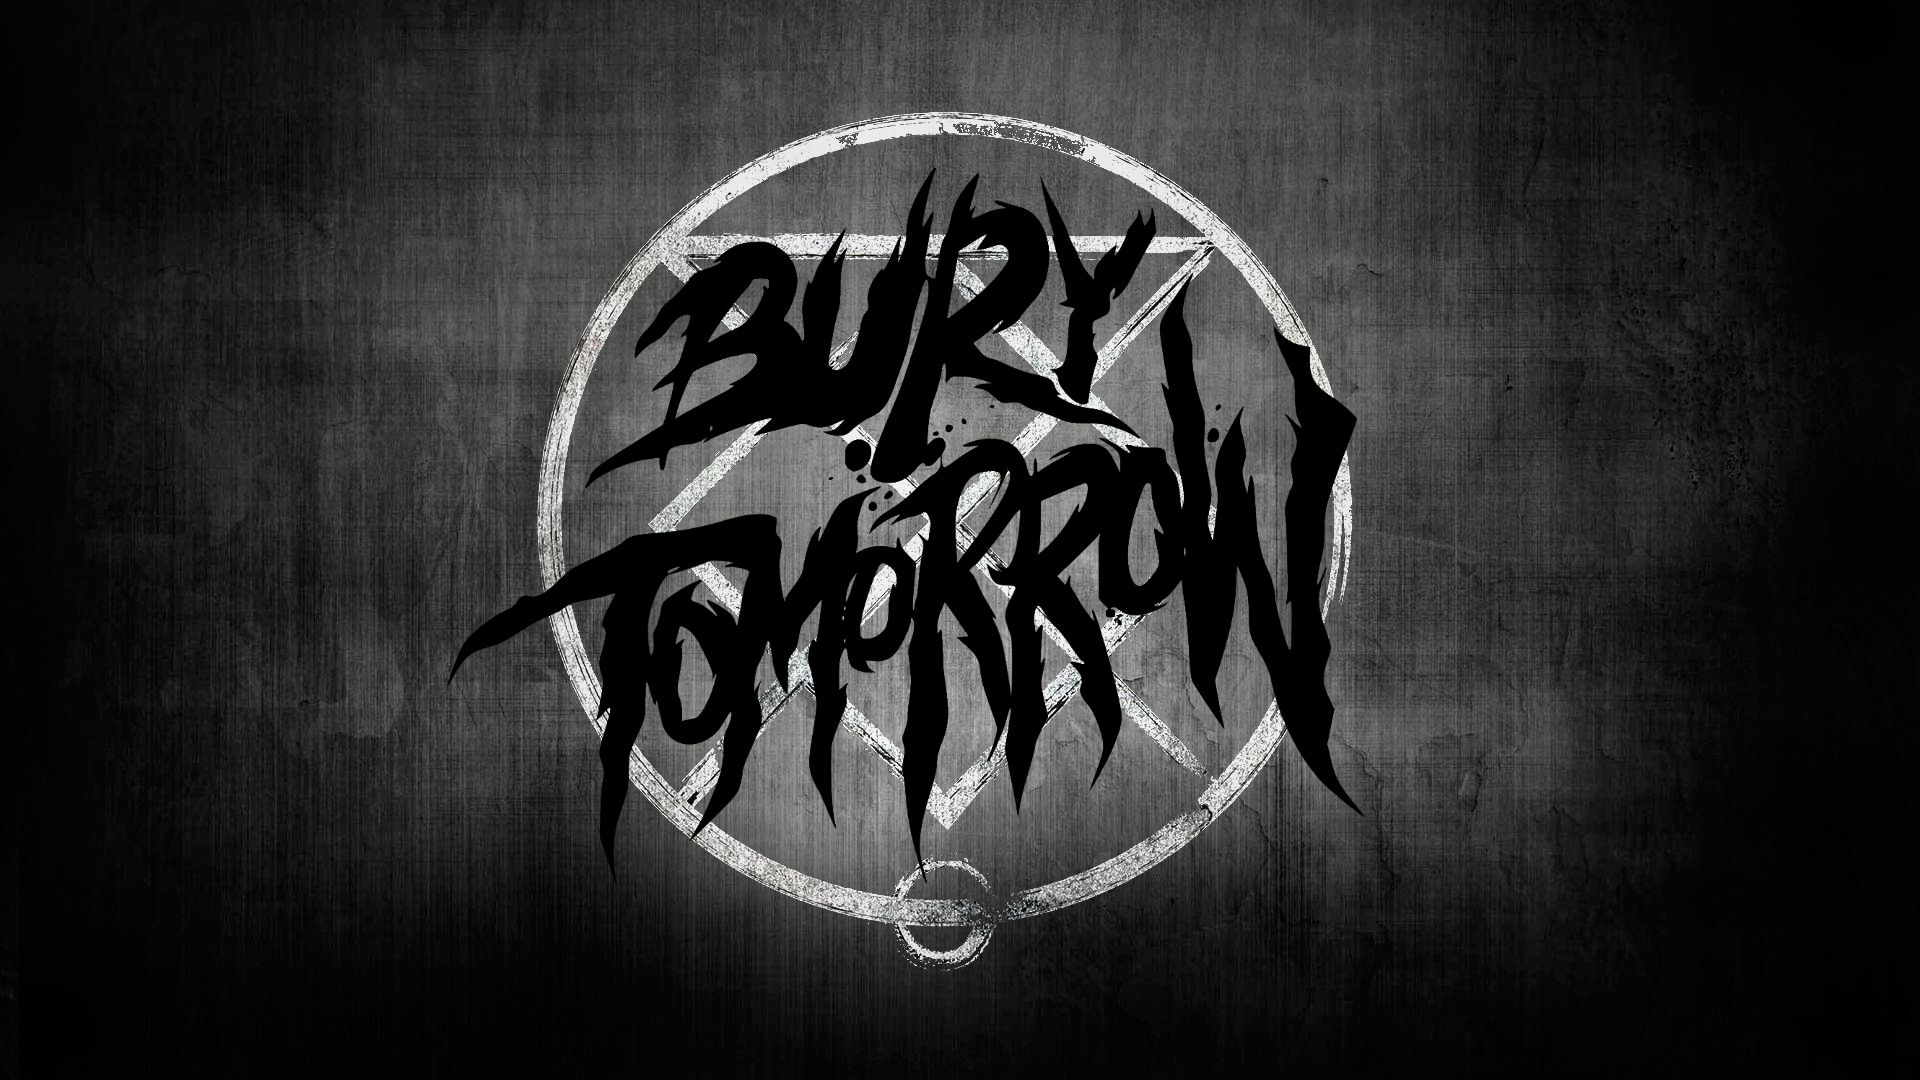 bury tomorrow wallpaper 48760